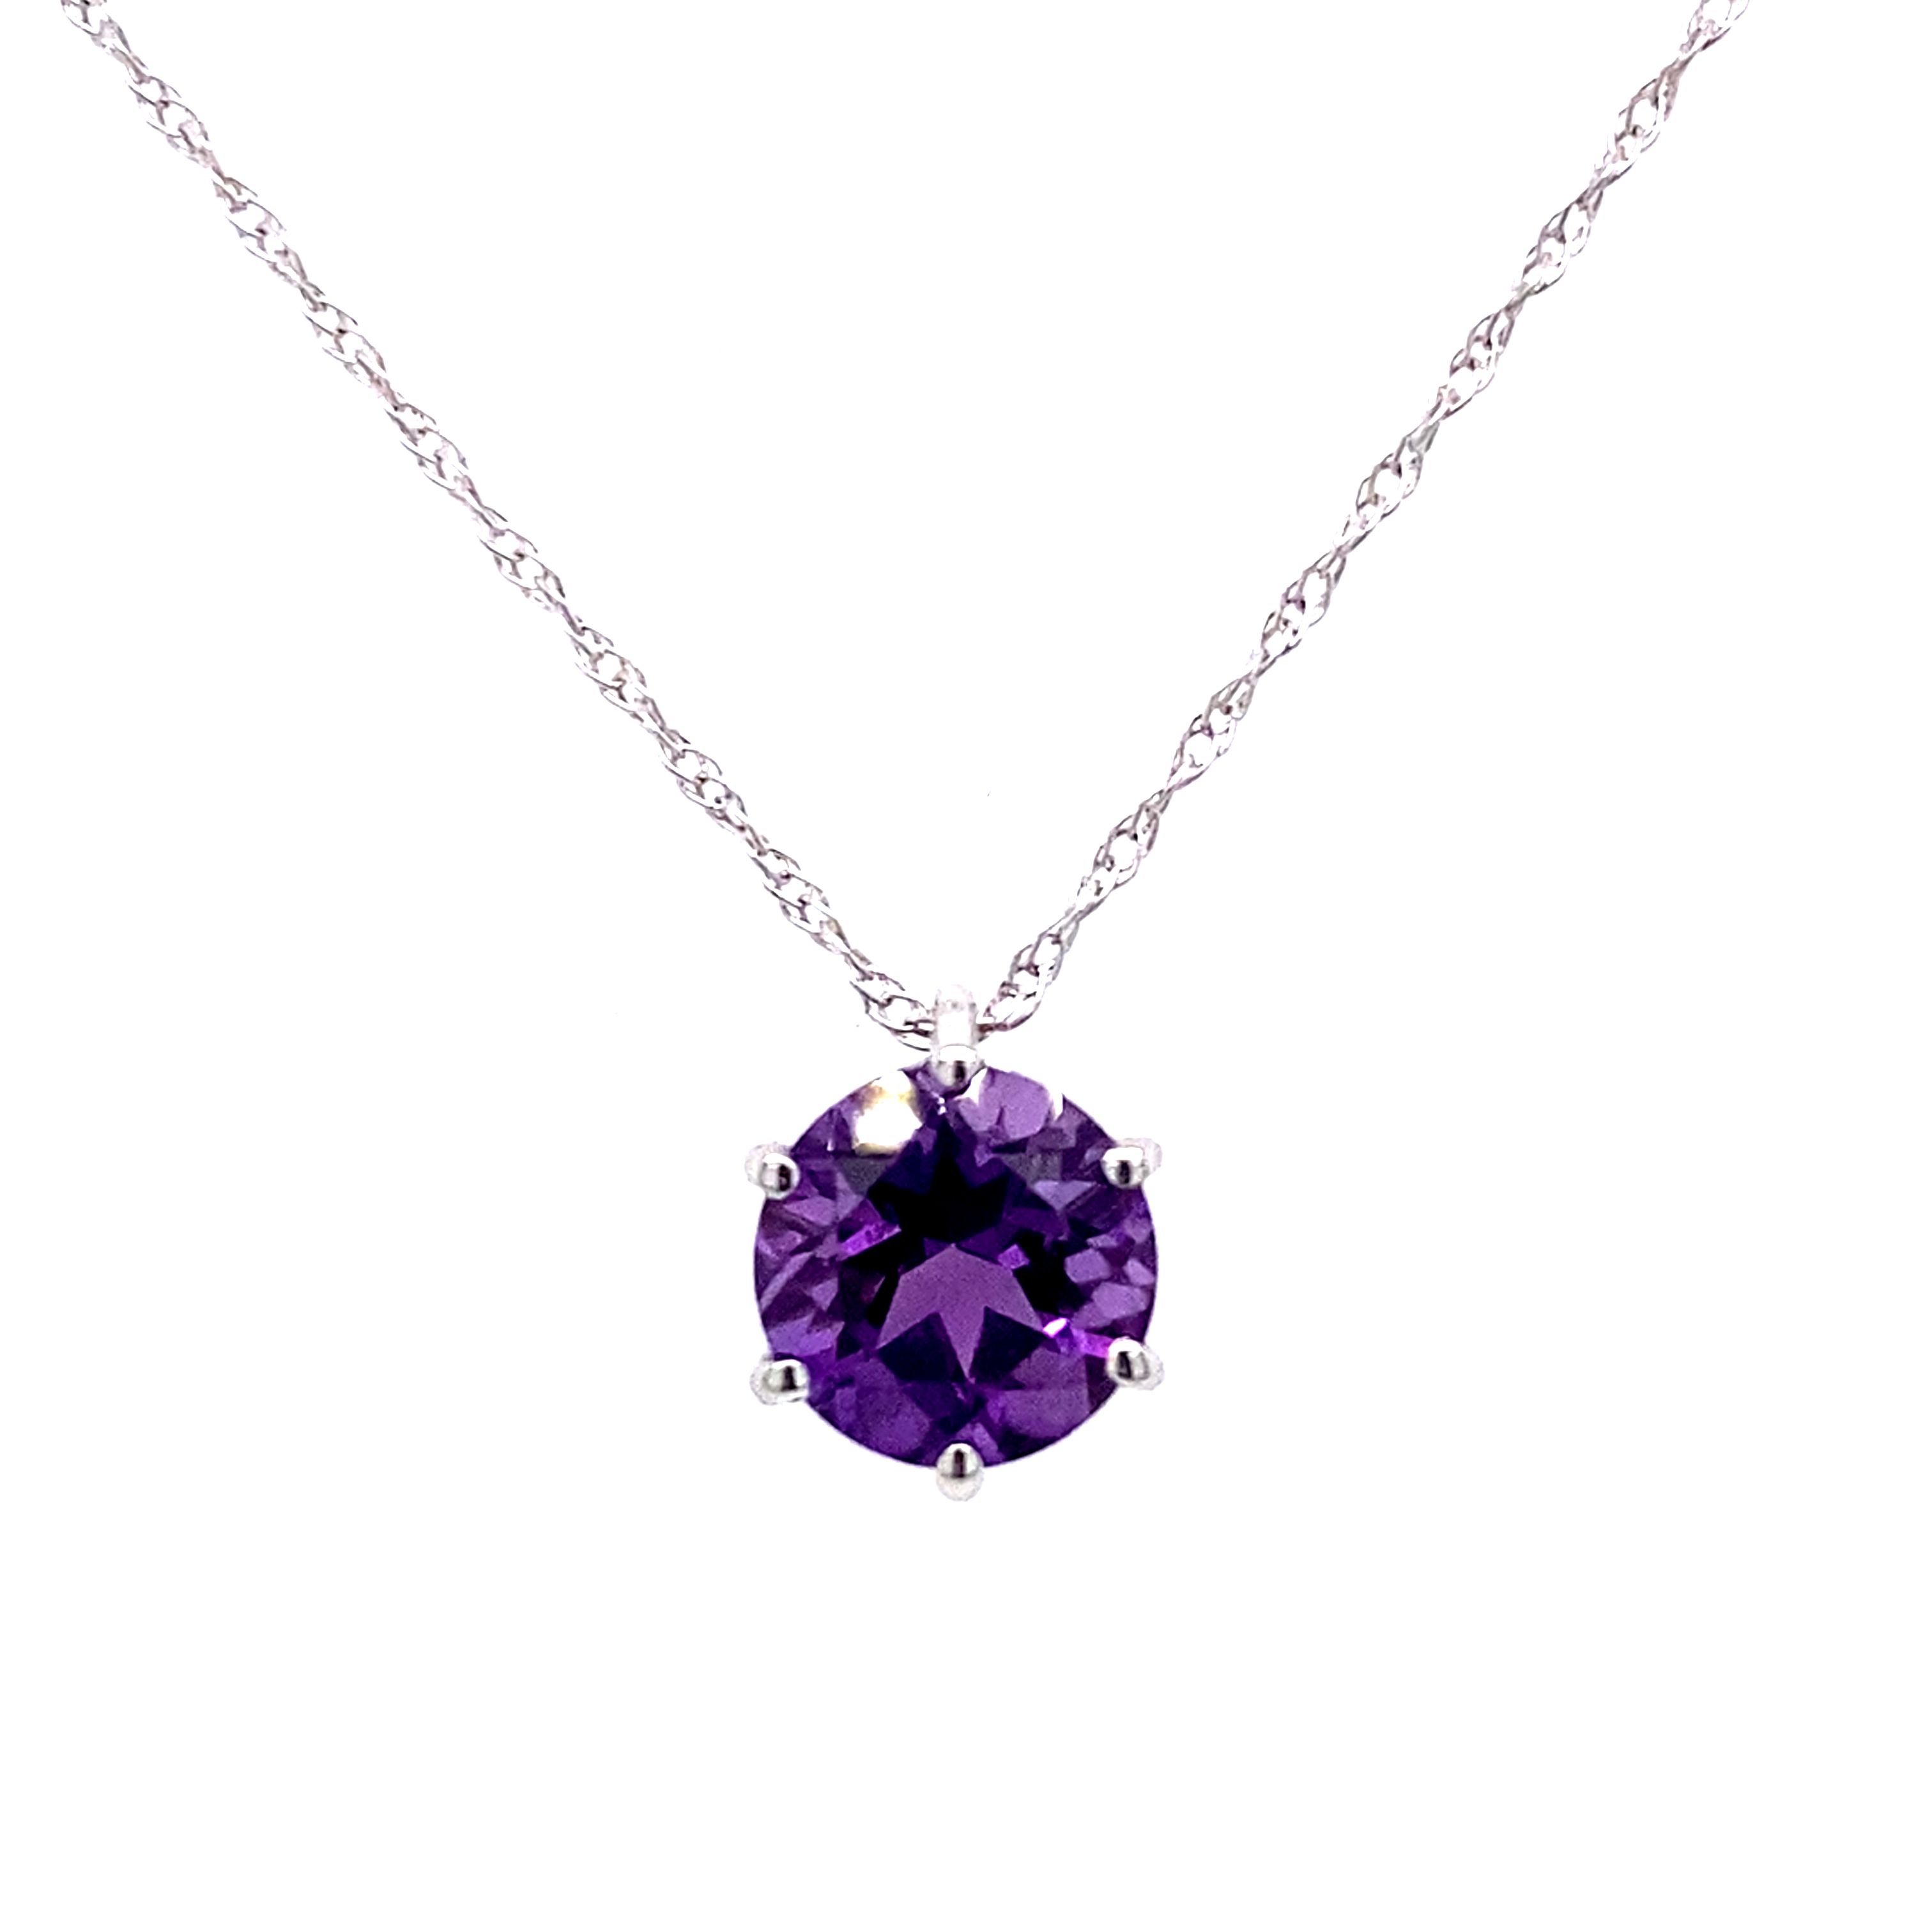 9 Carat White Gold and Amethyst Pendant